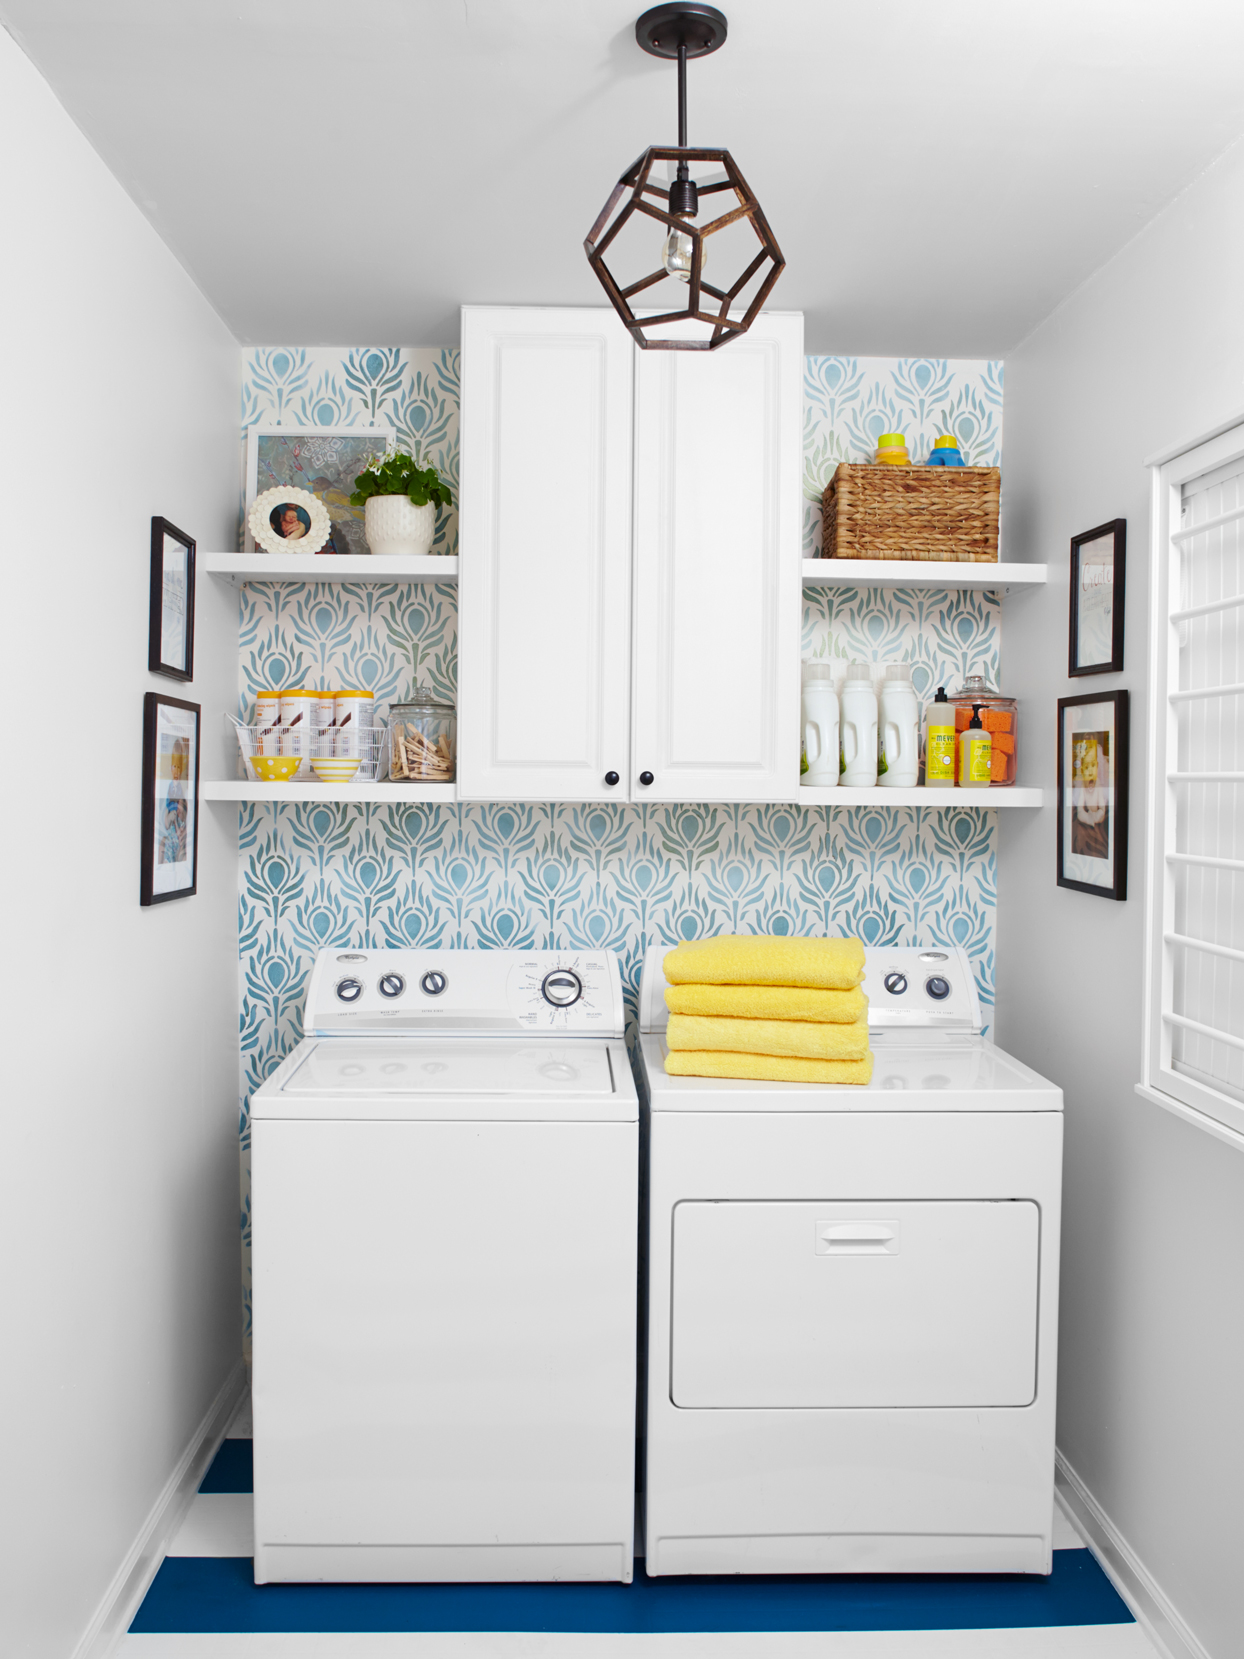 laundry room with blue and white striped floors